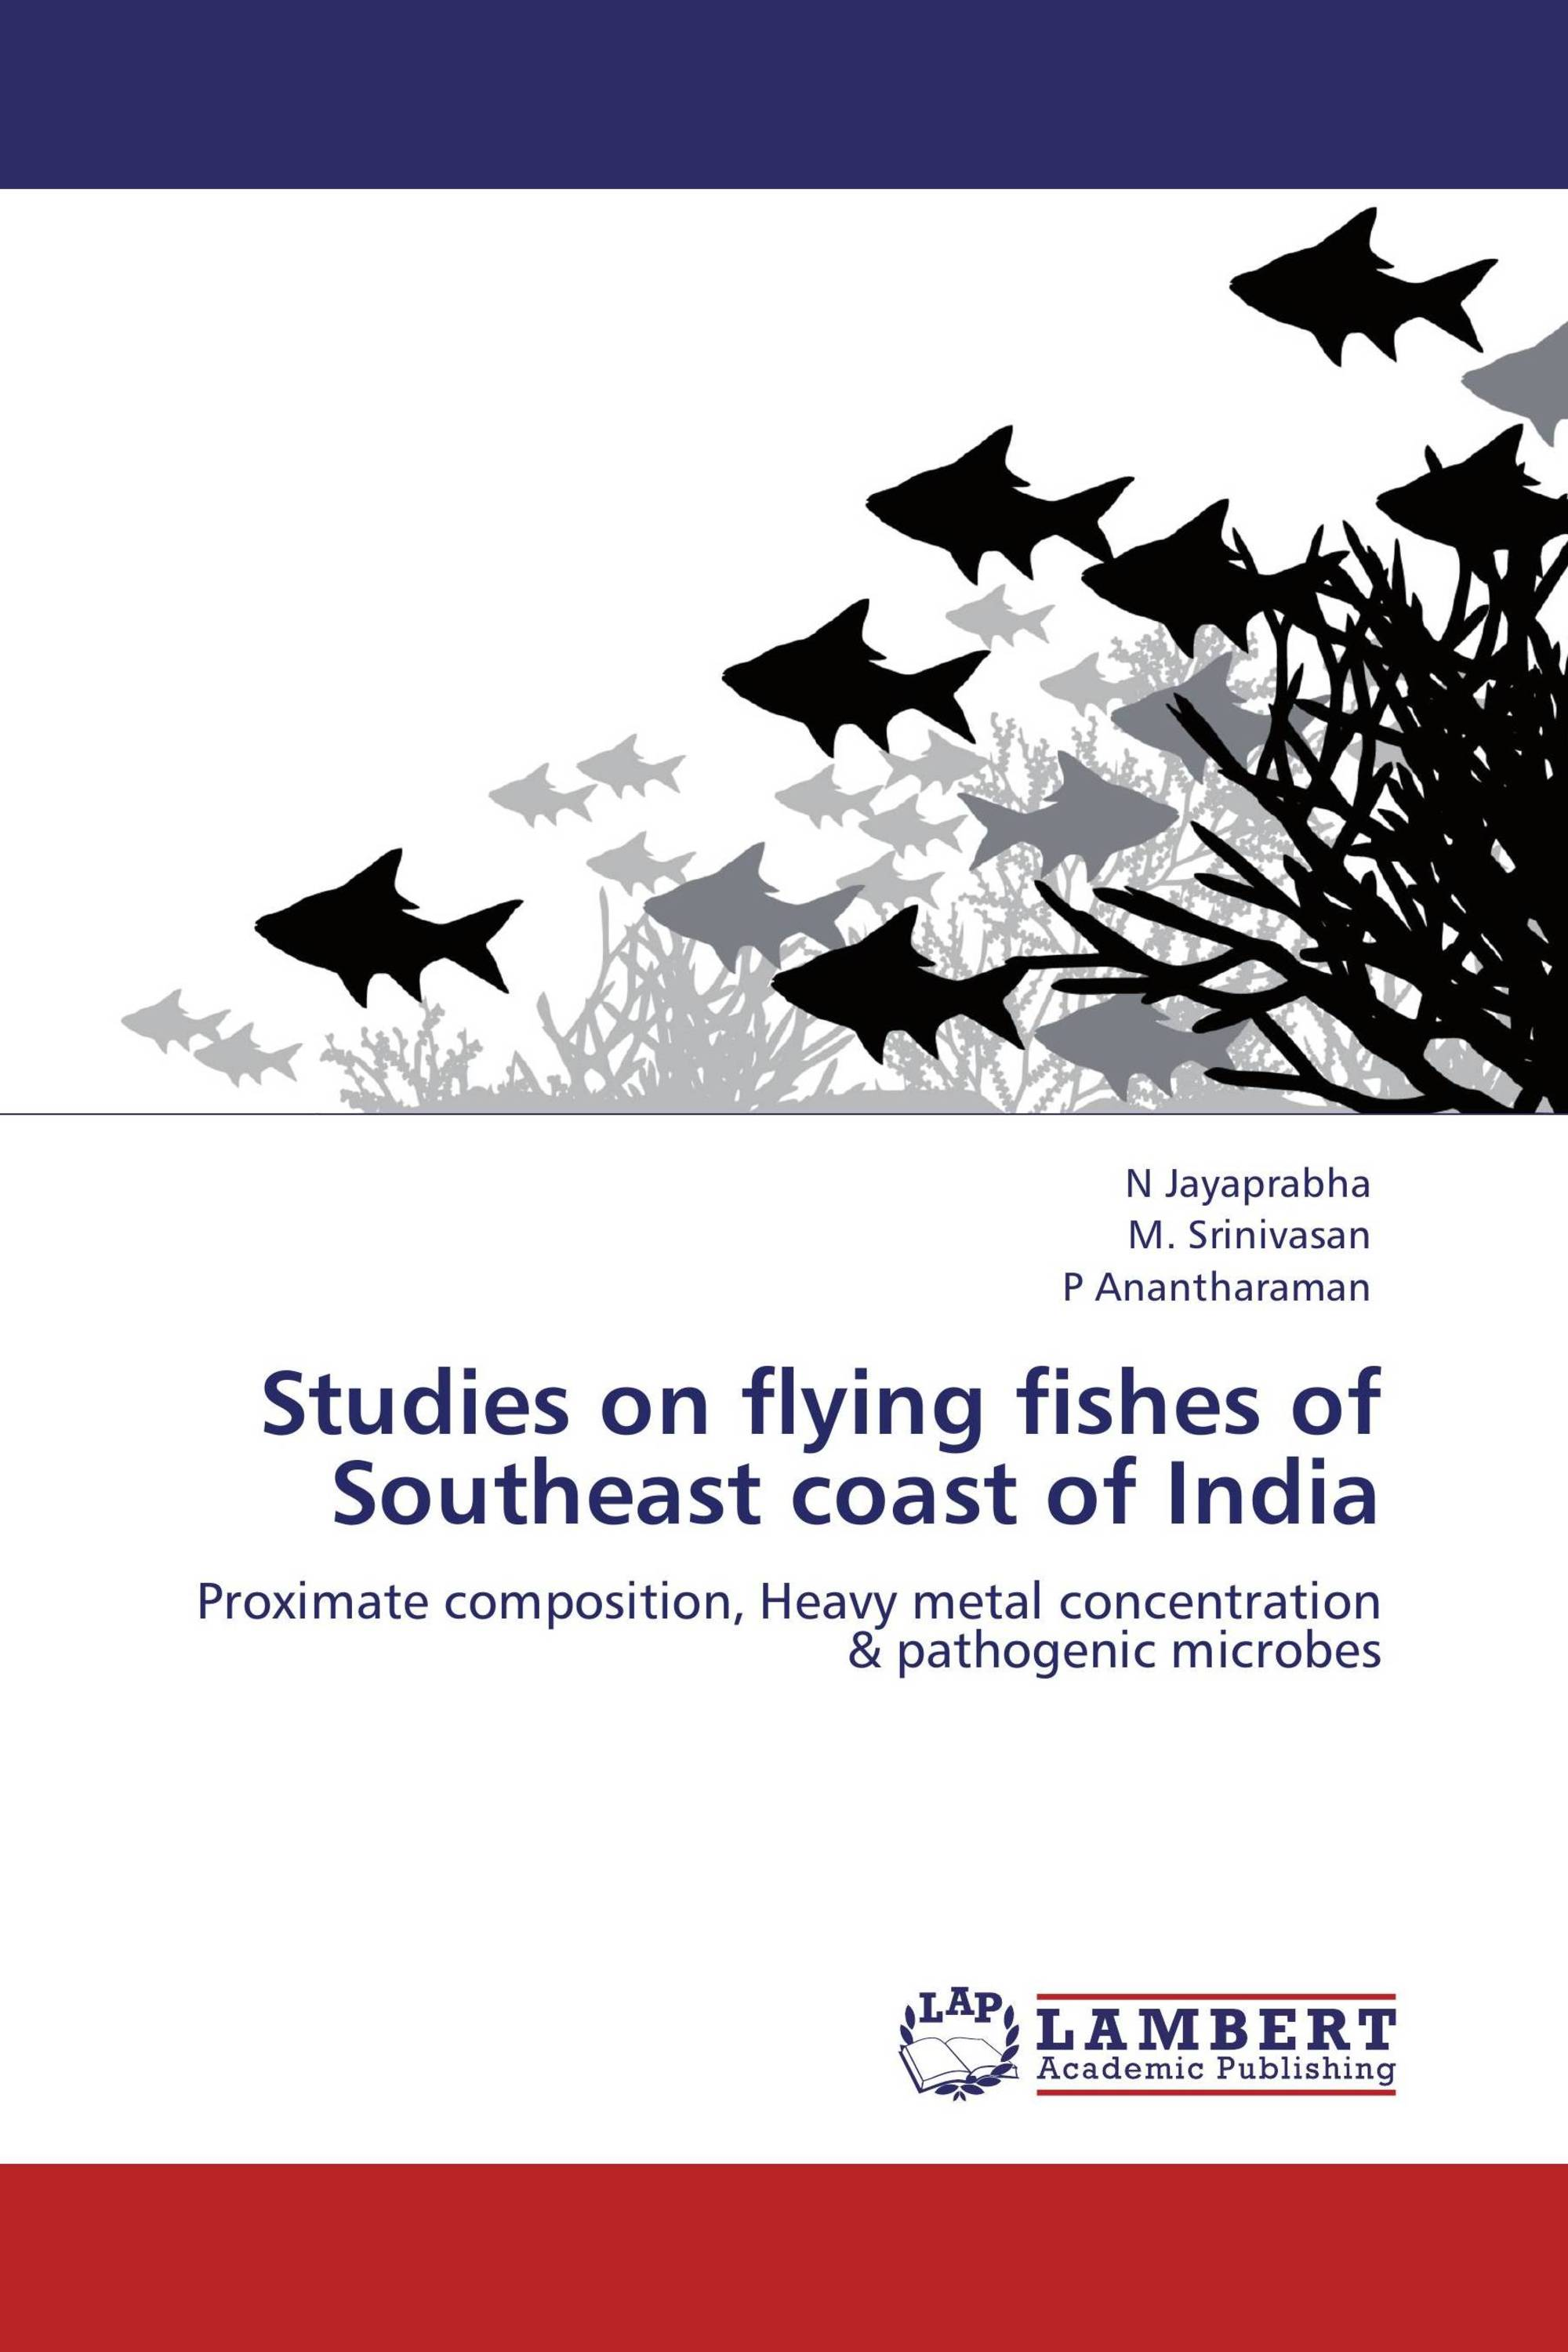 Studies on flying fishes of Southeast coast of India